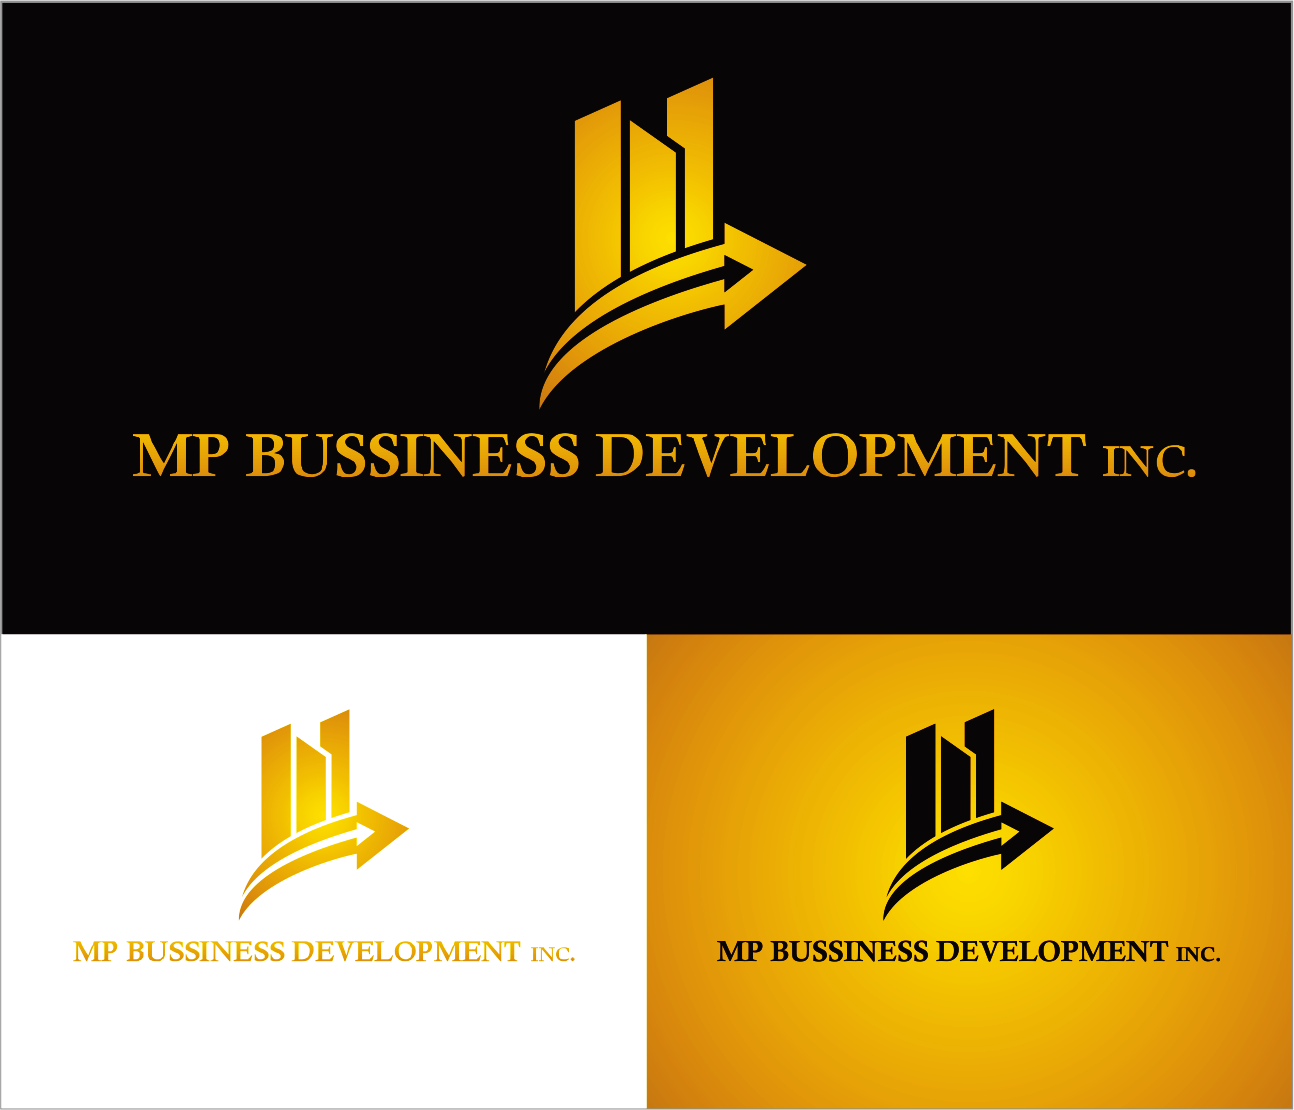 Logo Design by Armada Jamaluddin - Entry No. 196 in the Logo Design Contest MP Business Development Inc. Logo Design.